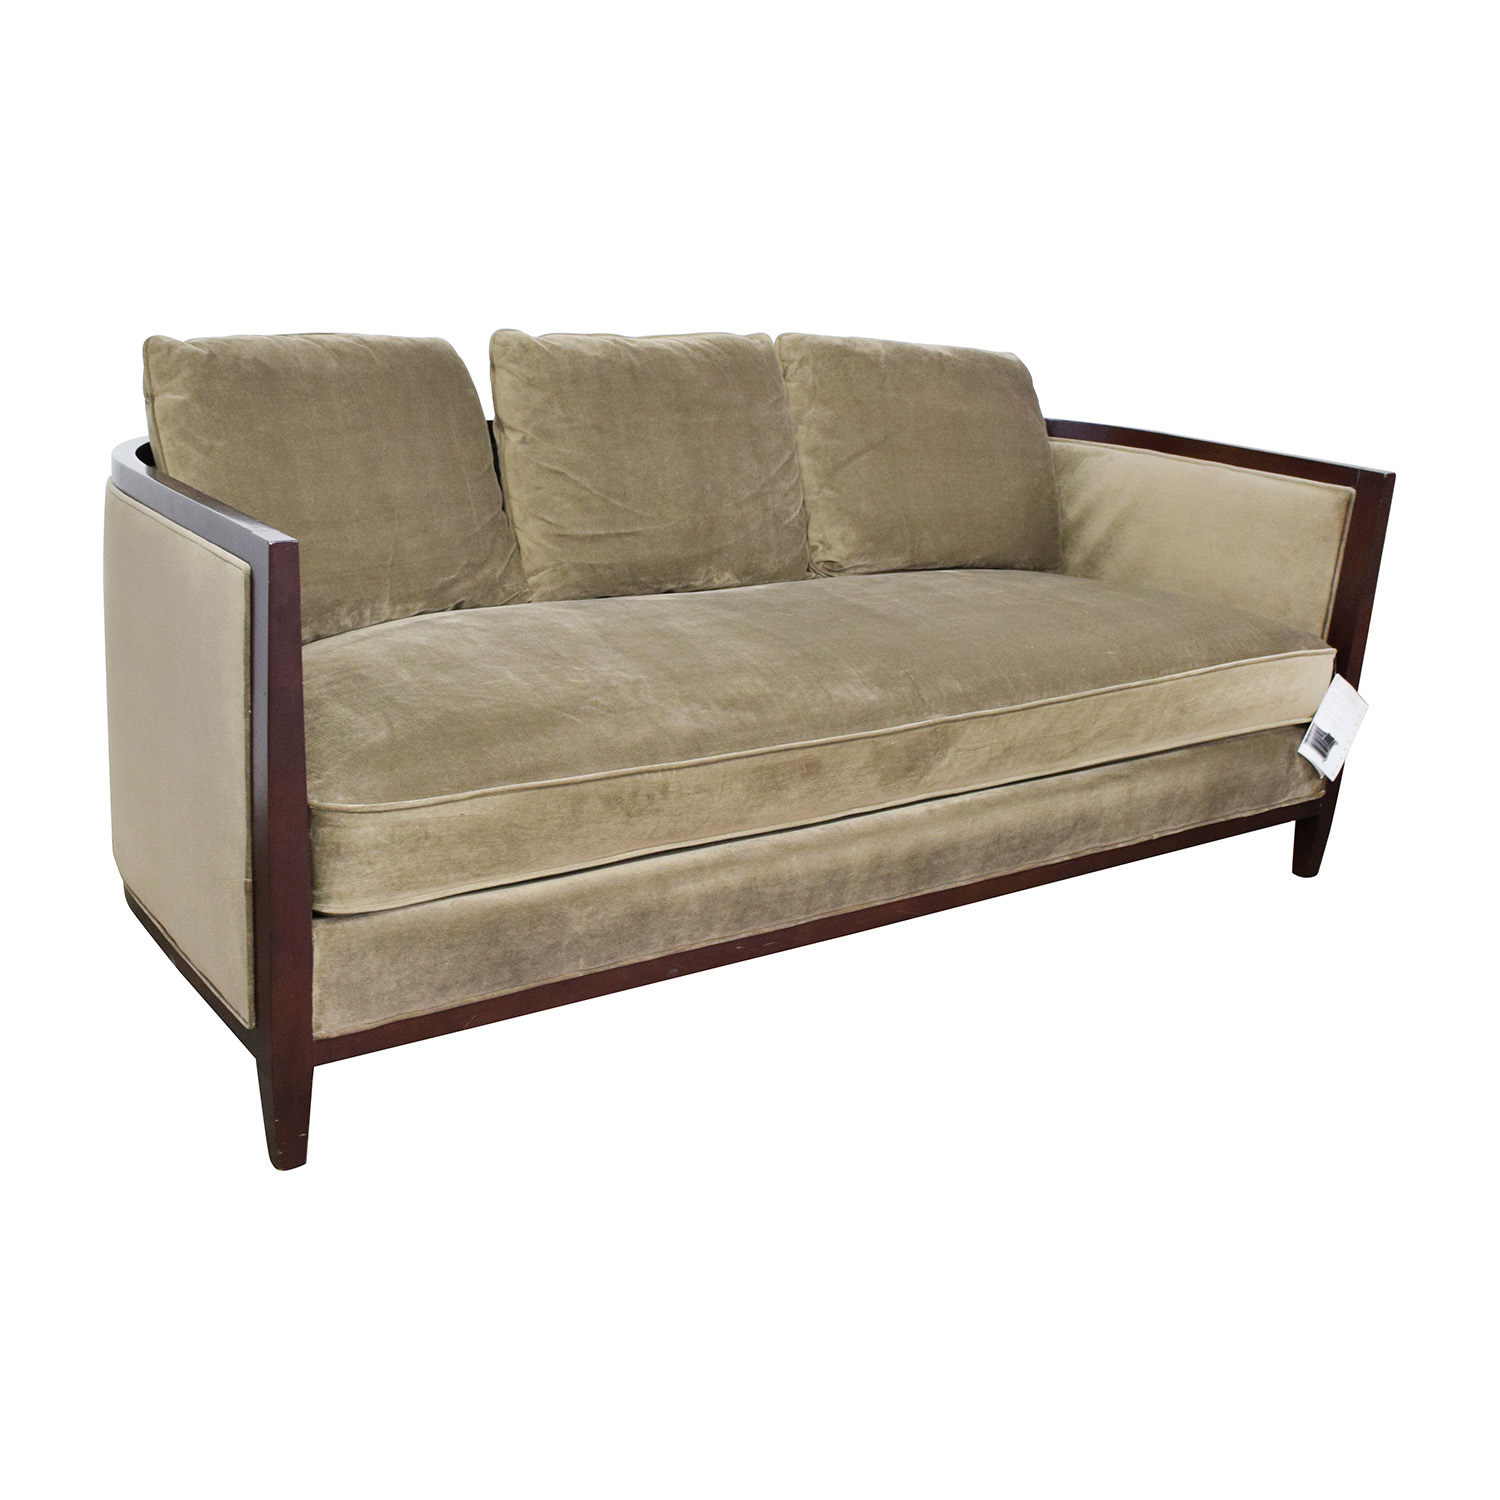 Single Cushion Sofa Single Cushion Loveseat Foter Thesofa